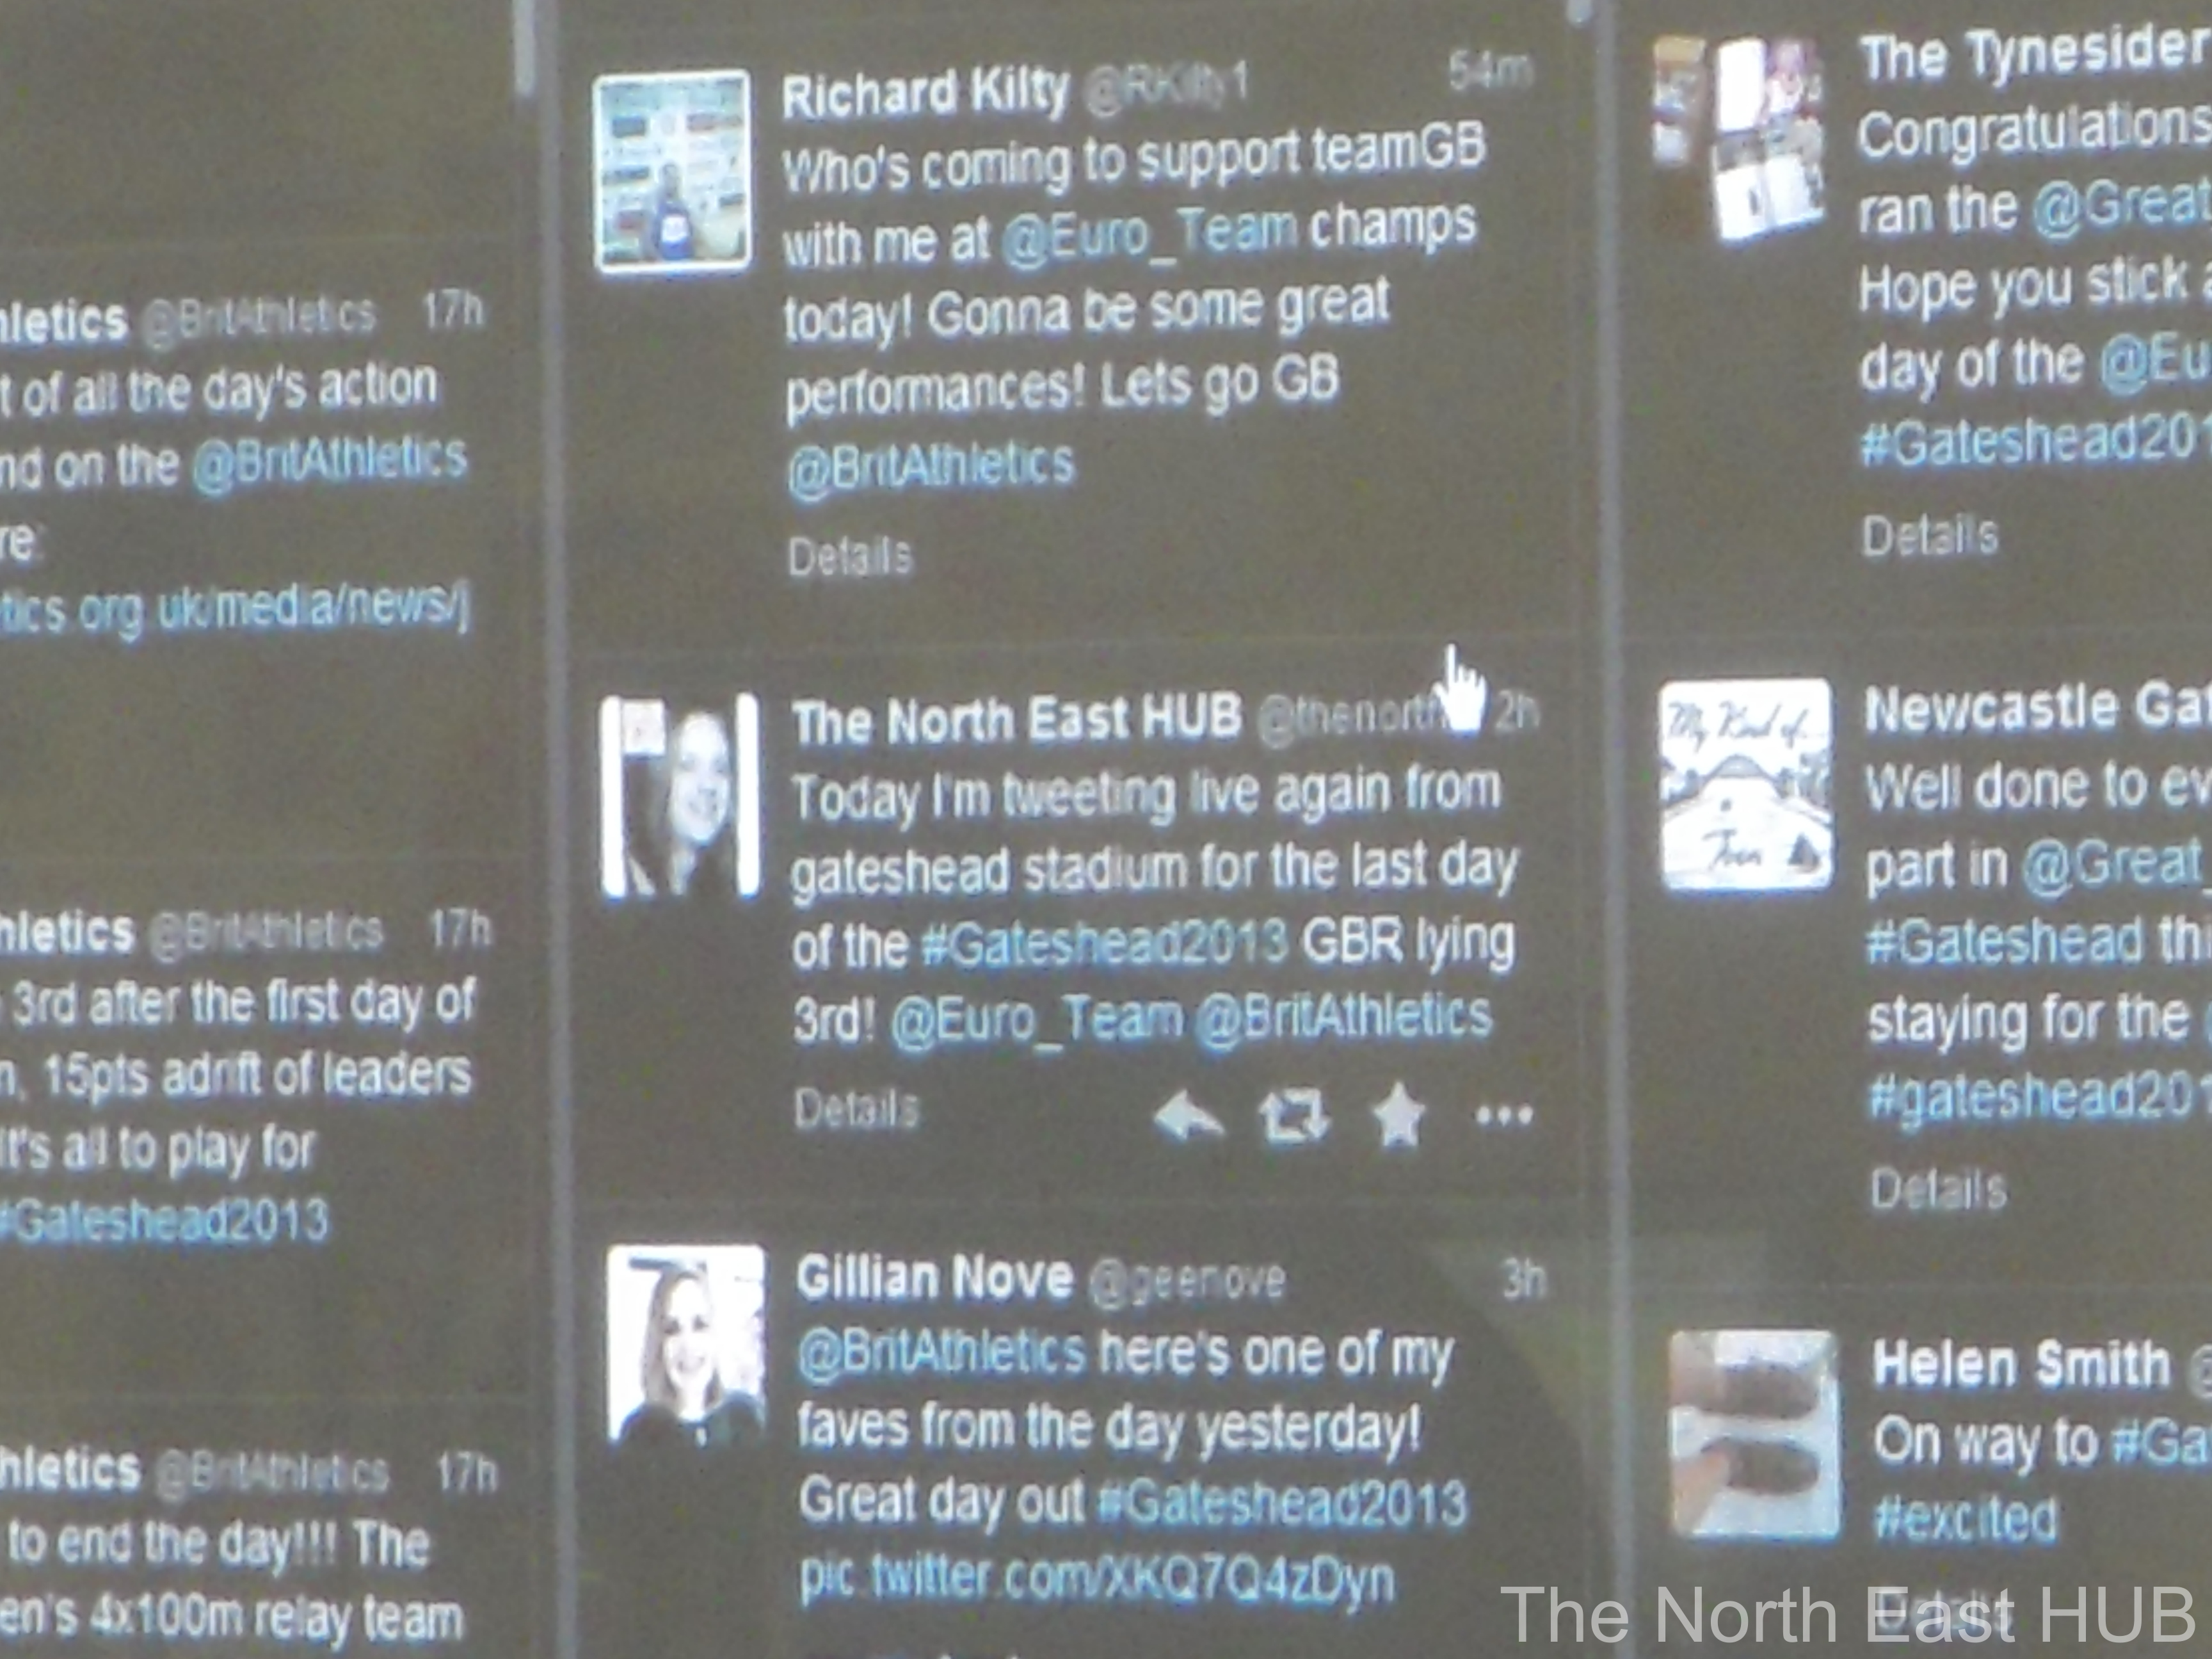 Our moment of fame on the updates board in the media centre :)